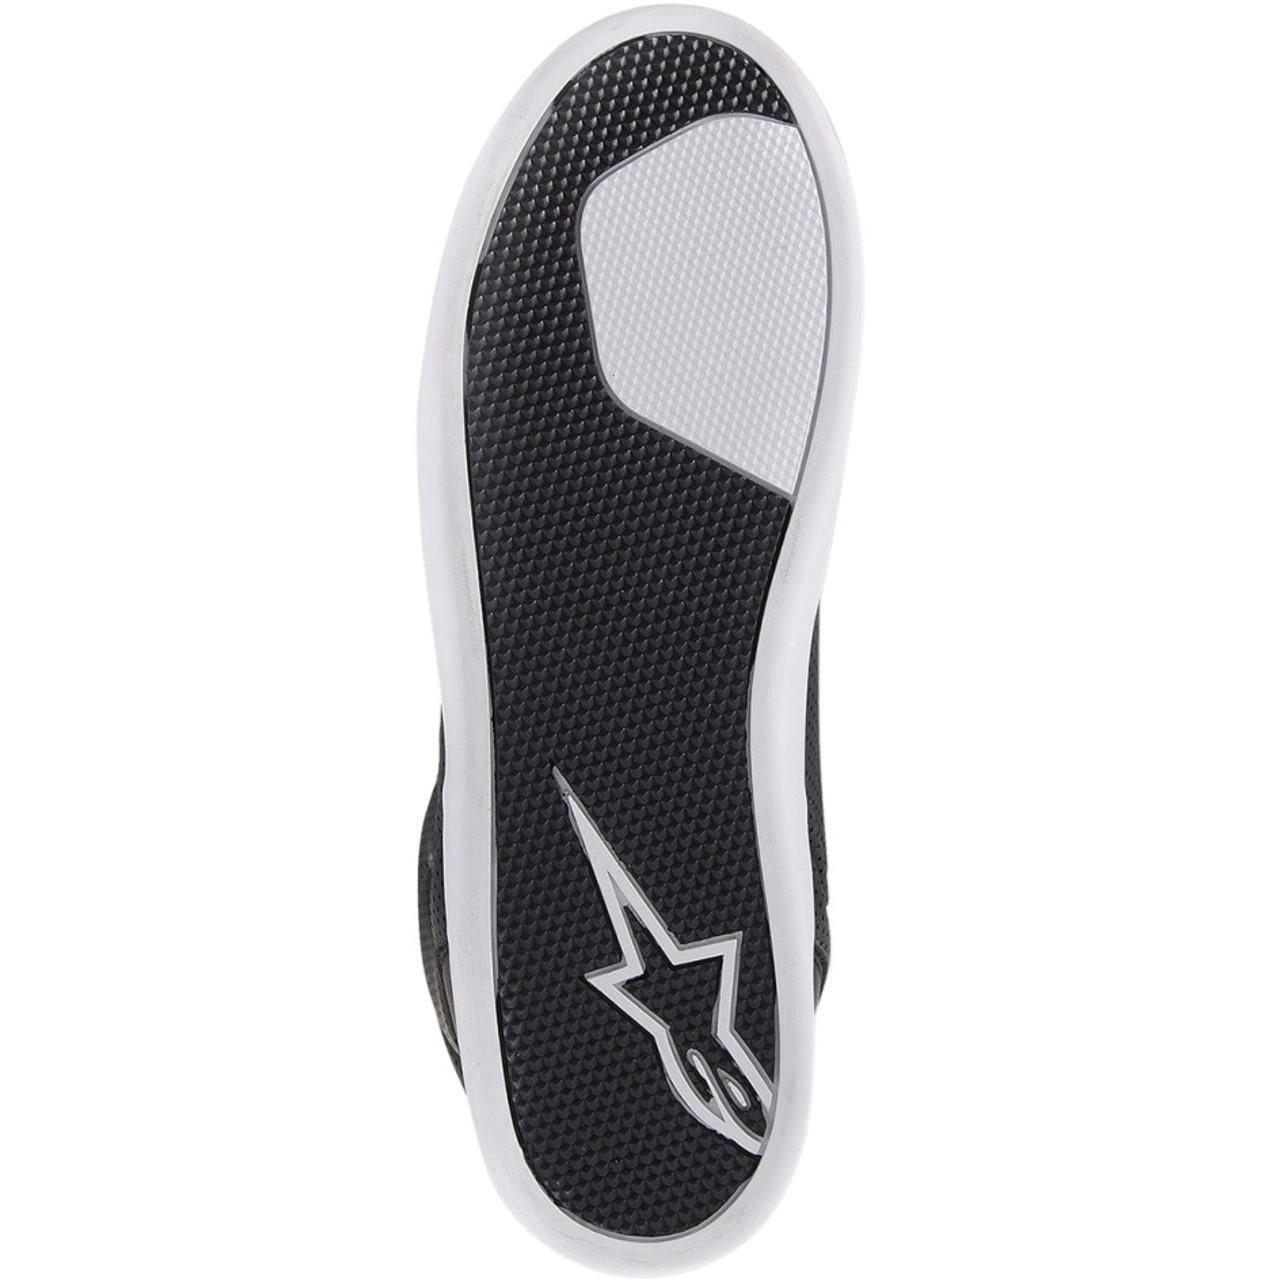 23251717c0 Alpinestars Anaheim Shoes